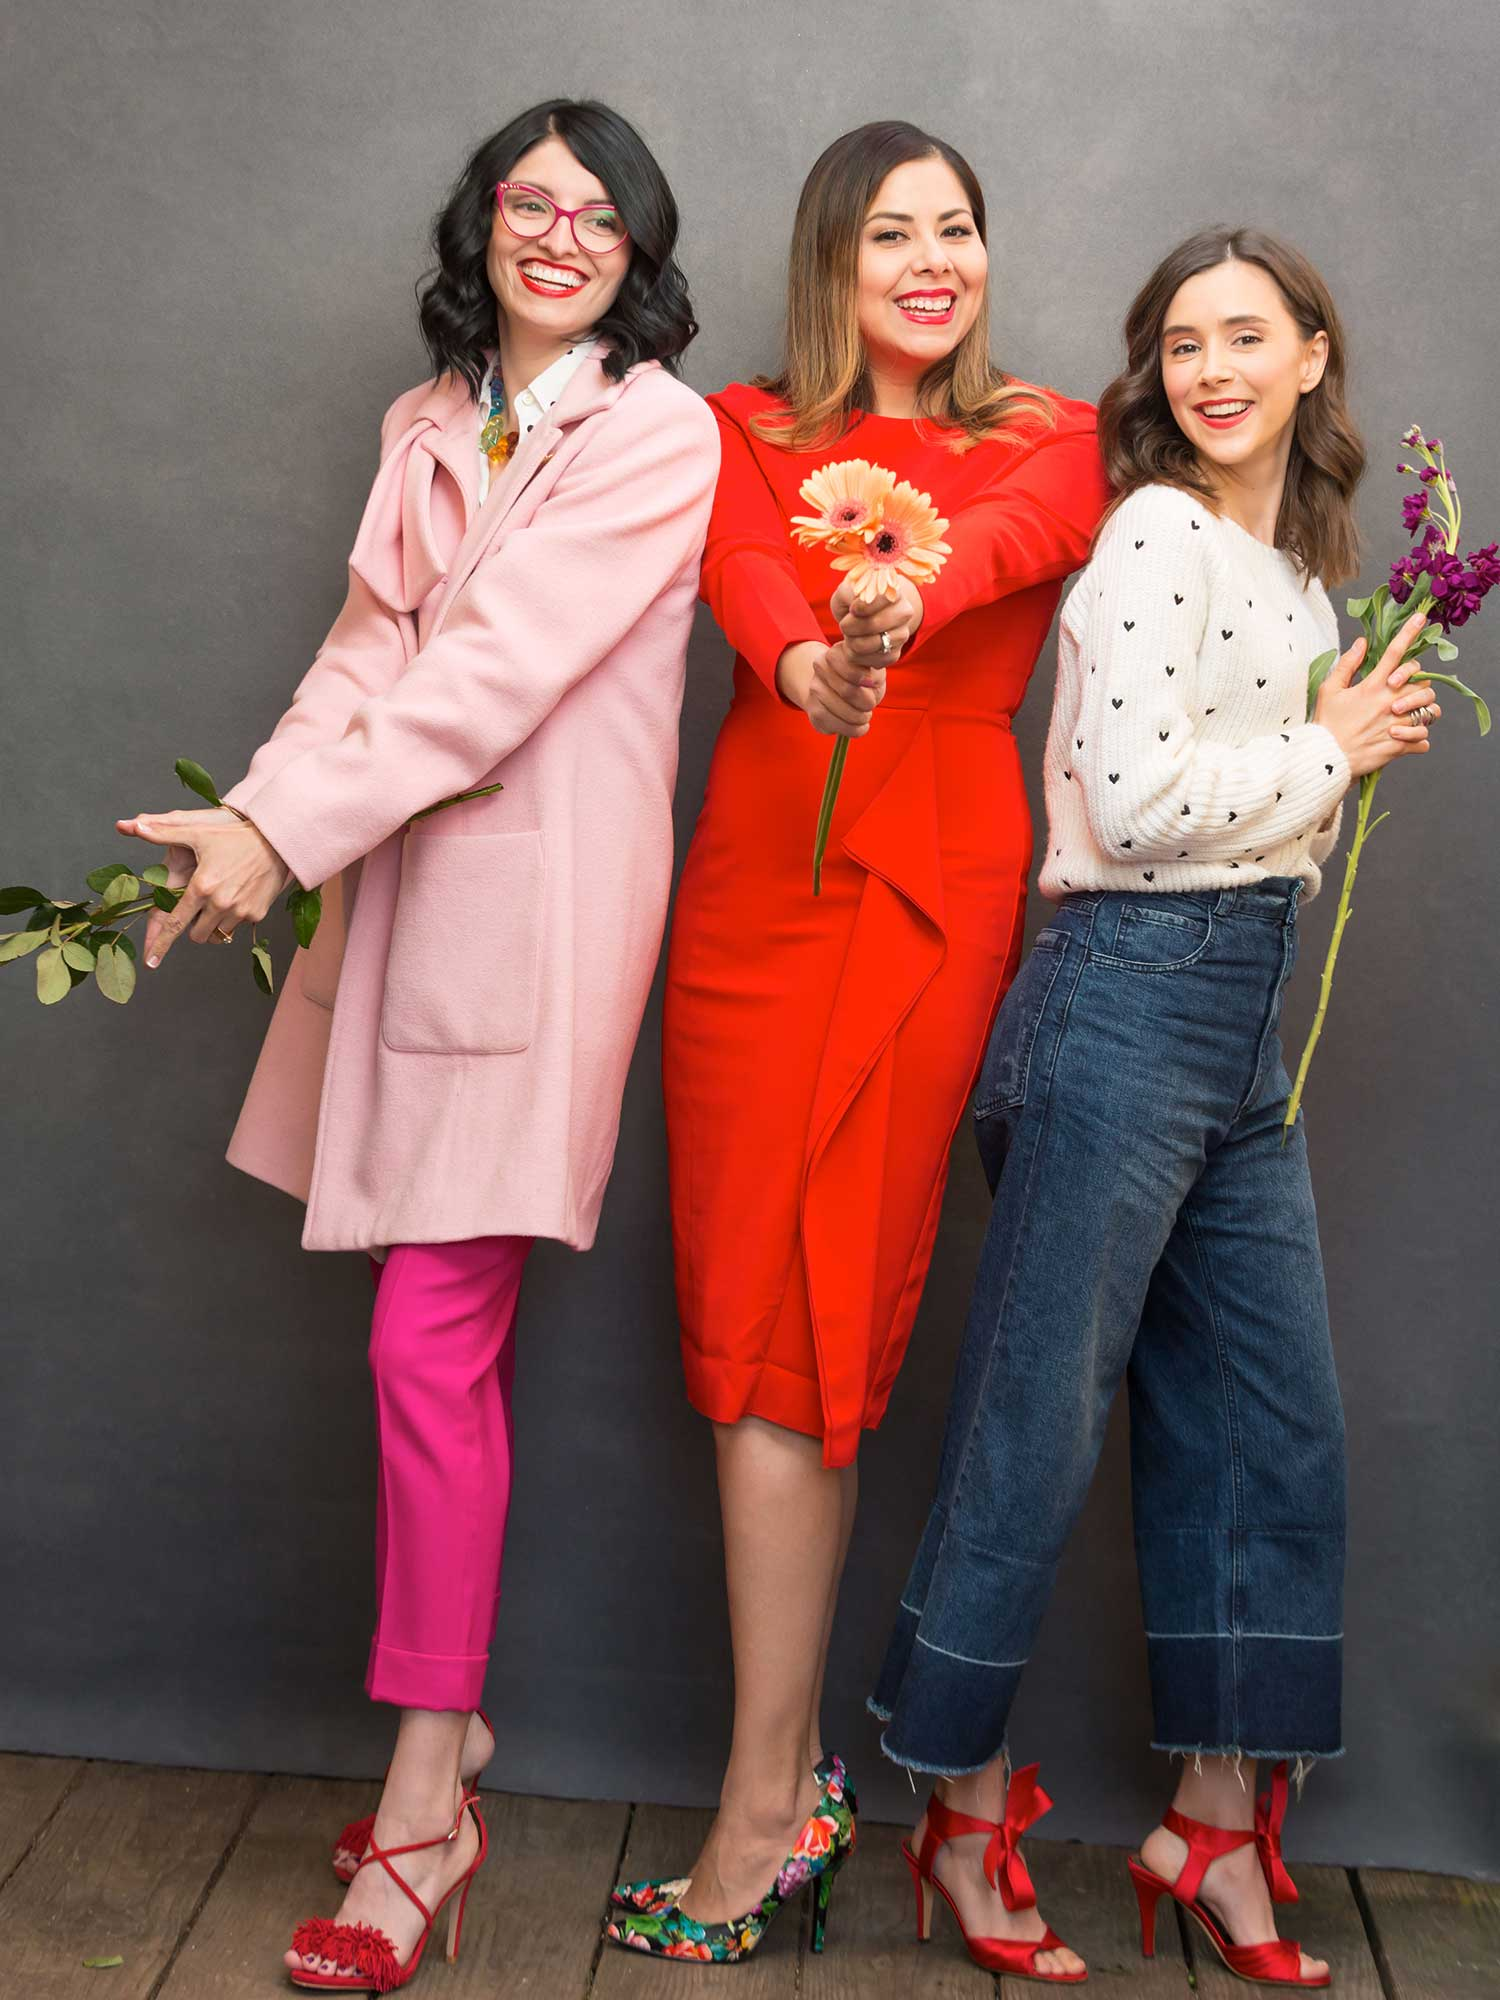 Jenna-Pilant-Lucky-Little-Mustardseed-Galentine's-Day-Floral-Fun-Pura-Sol-Photography-7